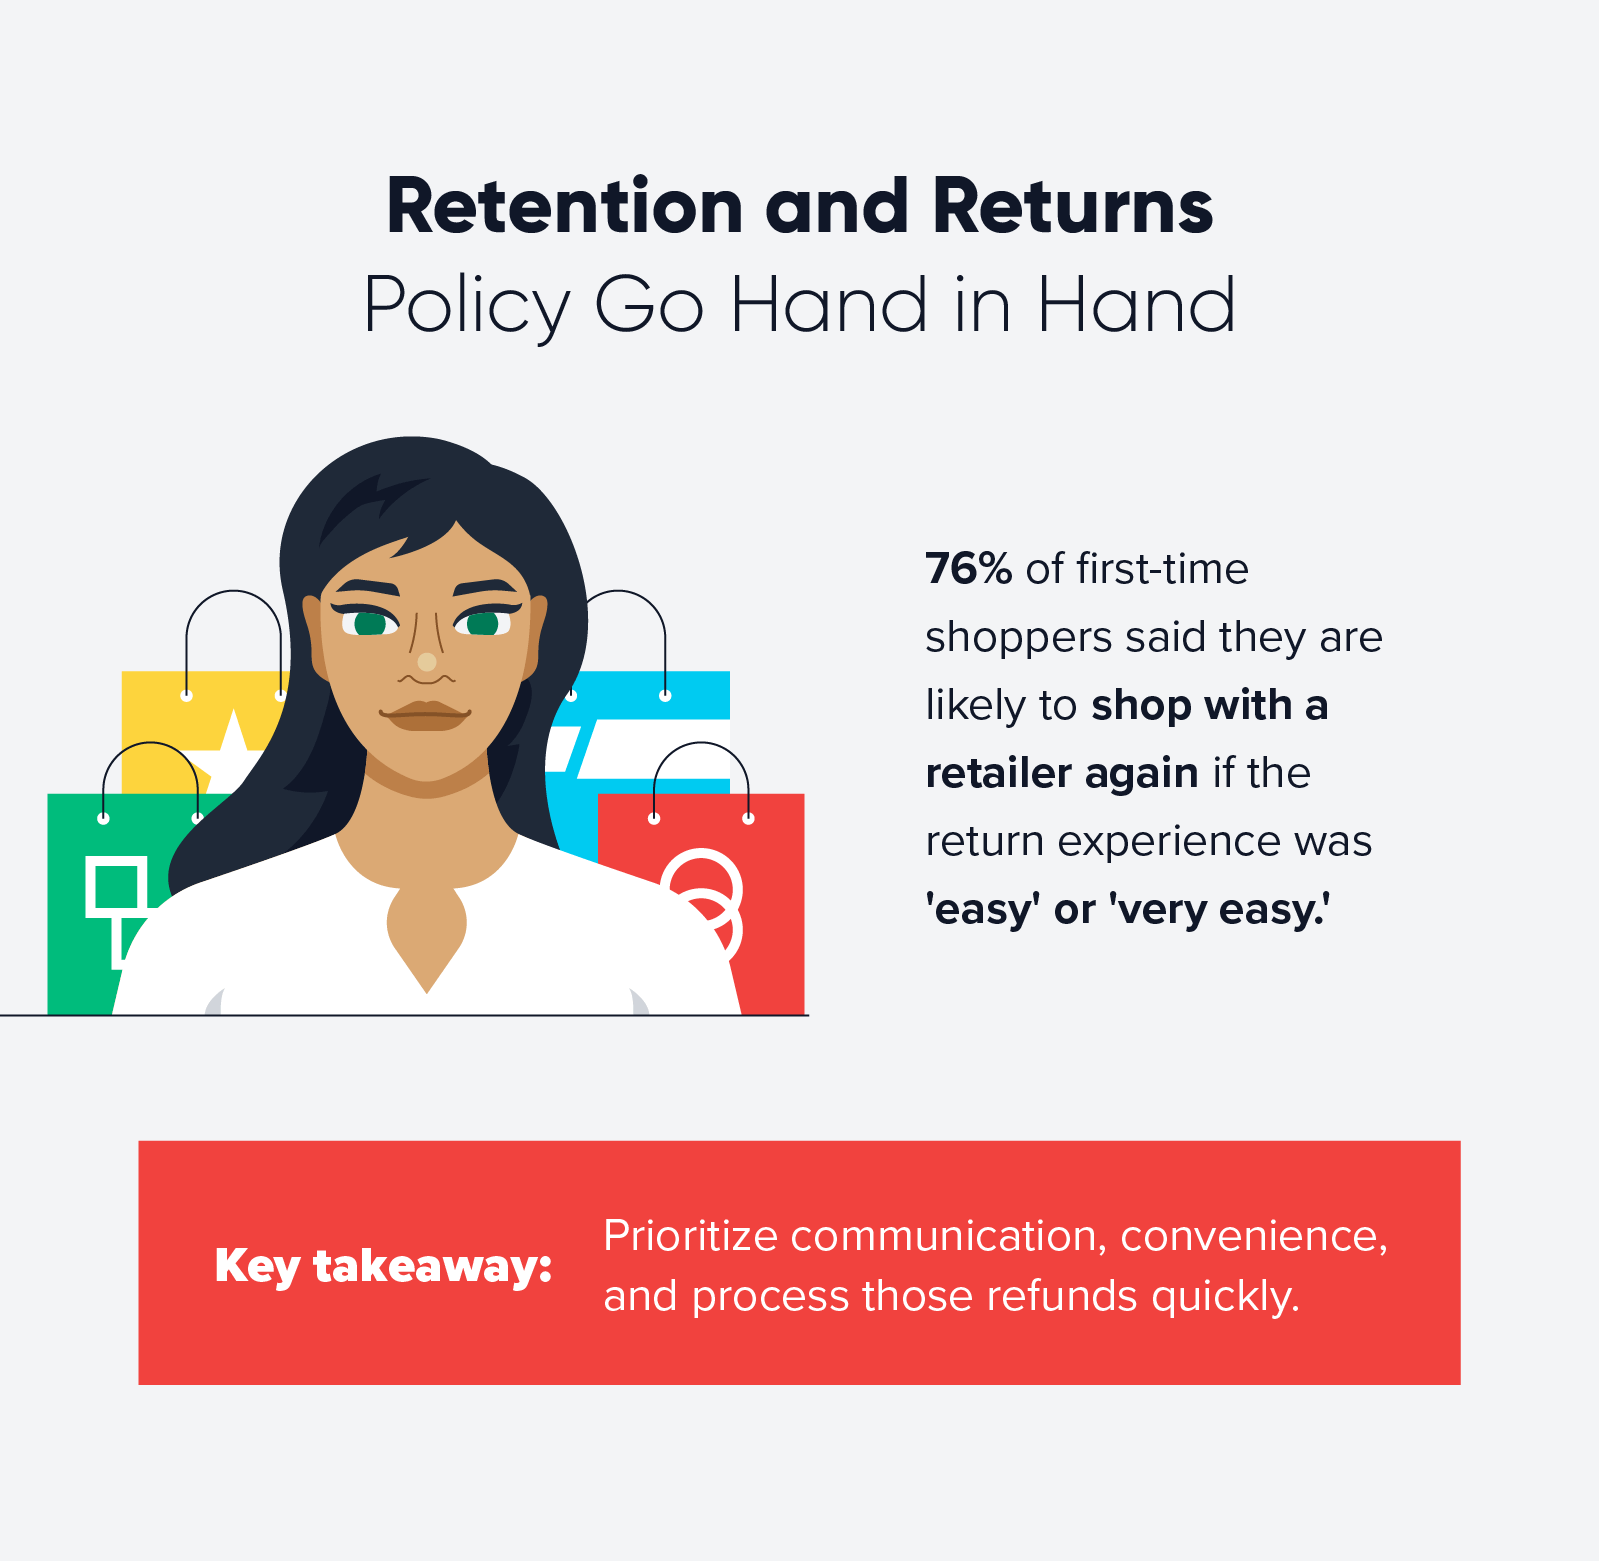 retention and return policy statistic